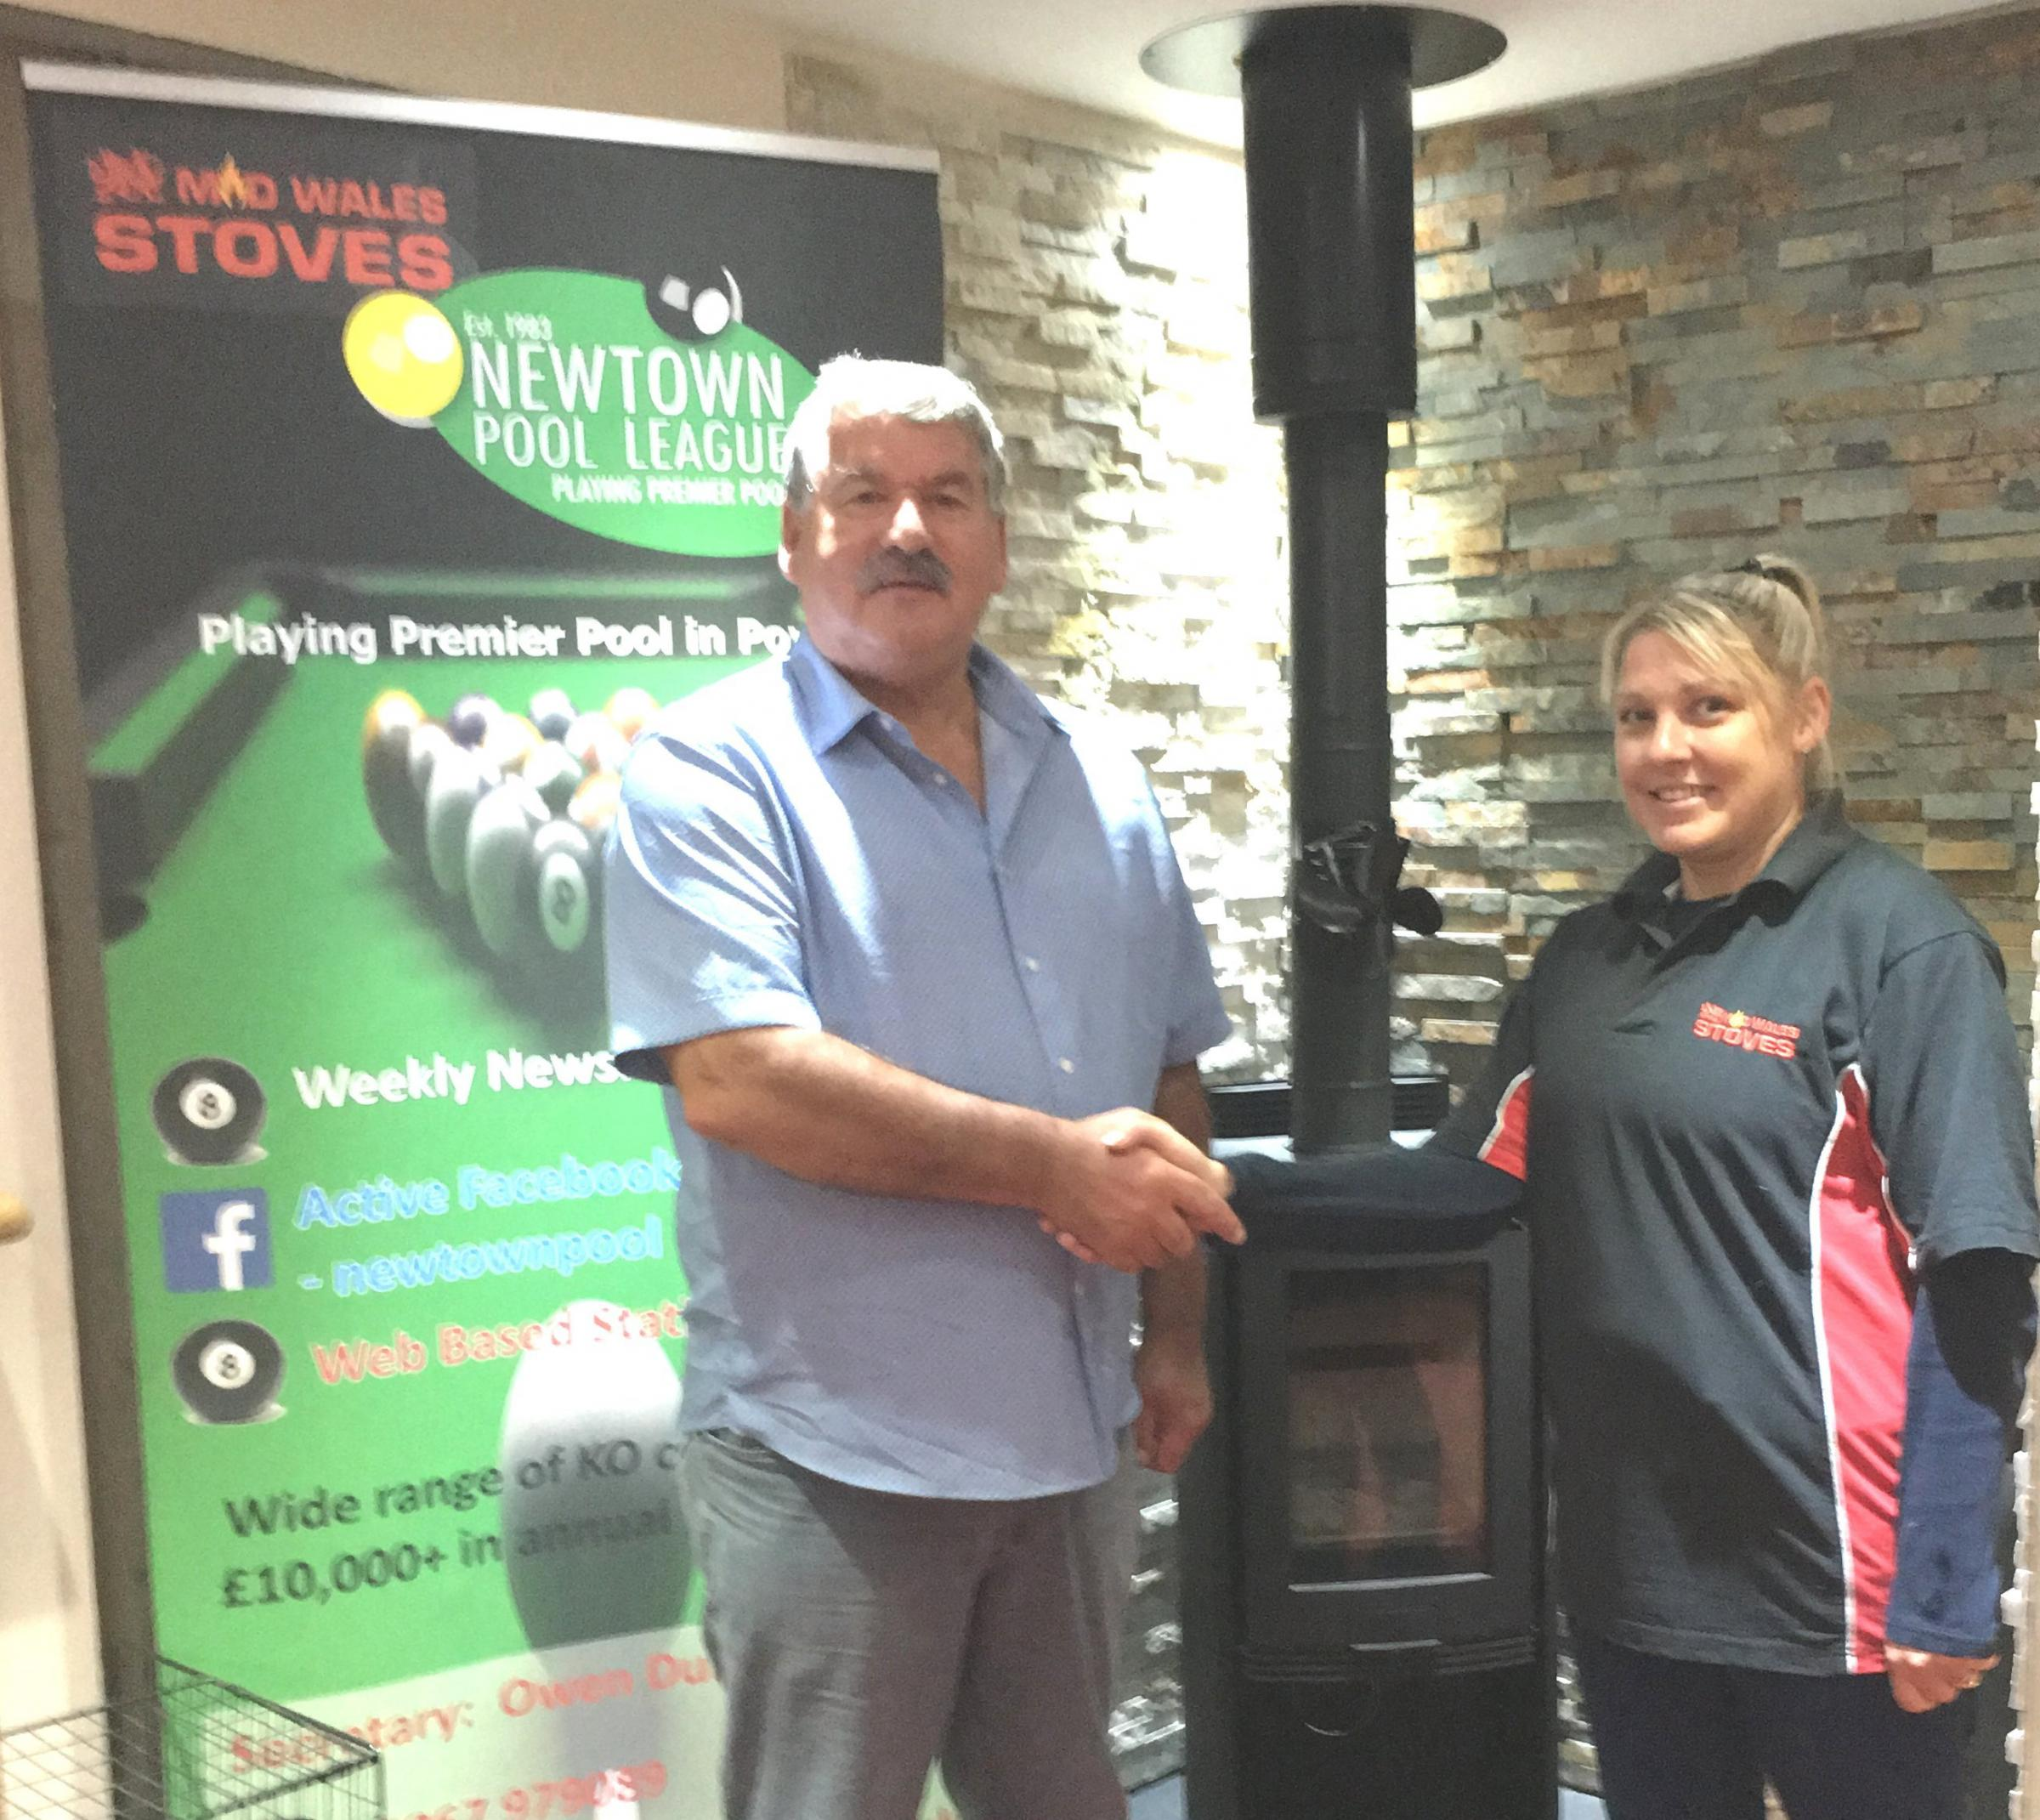 Mid Wales Stoves Newtown Pool League began its 36th year last weekend and started with a brand new sponsor in Mid Wales Stoves of Llanfair Caereinion.